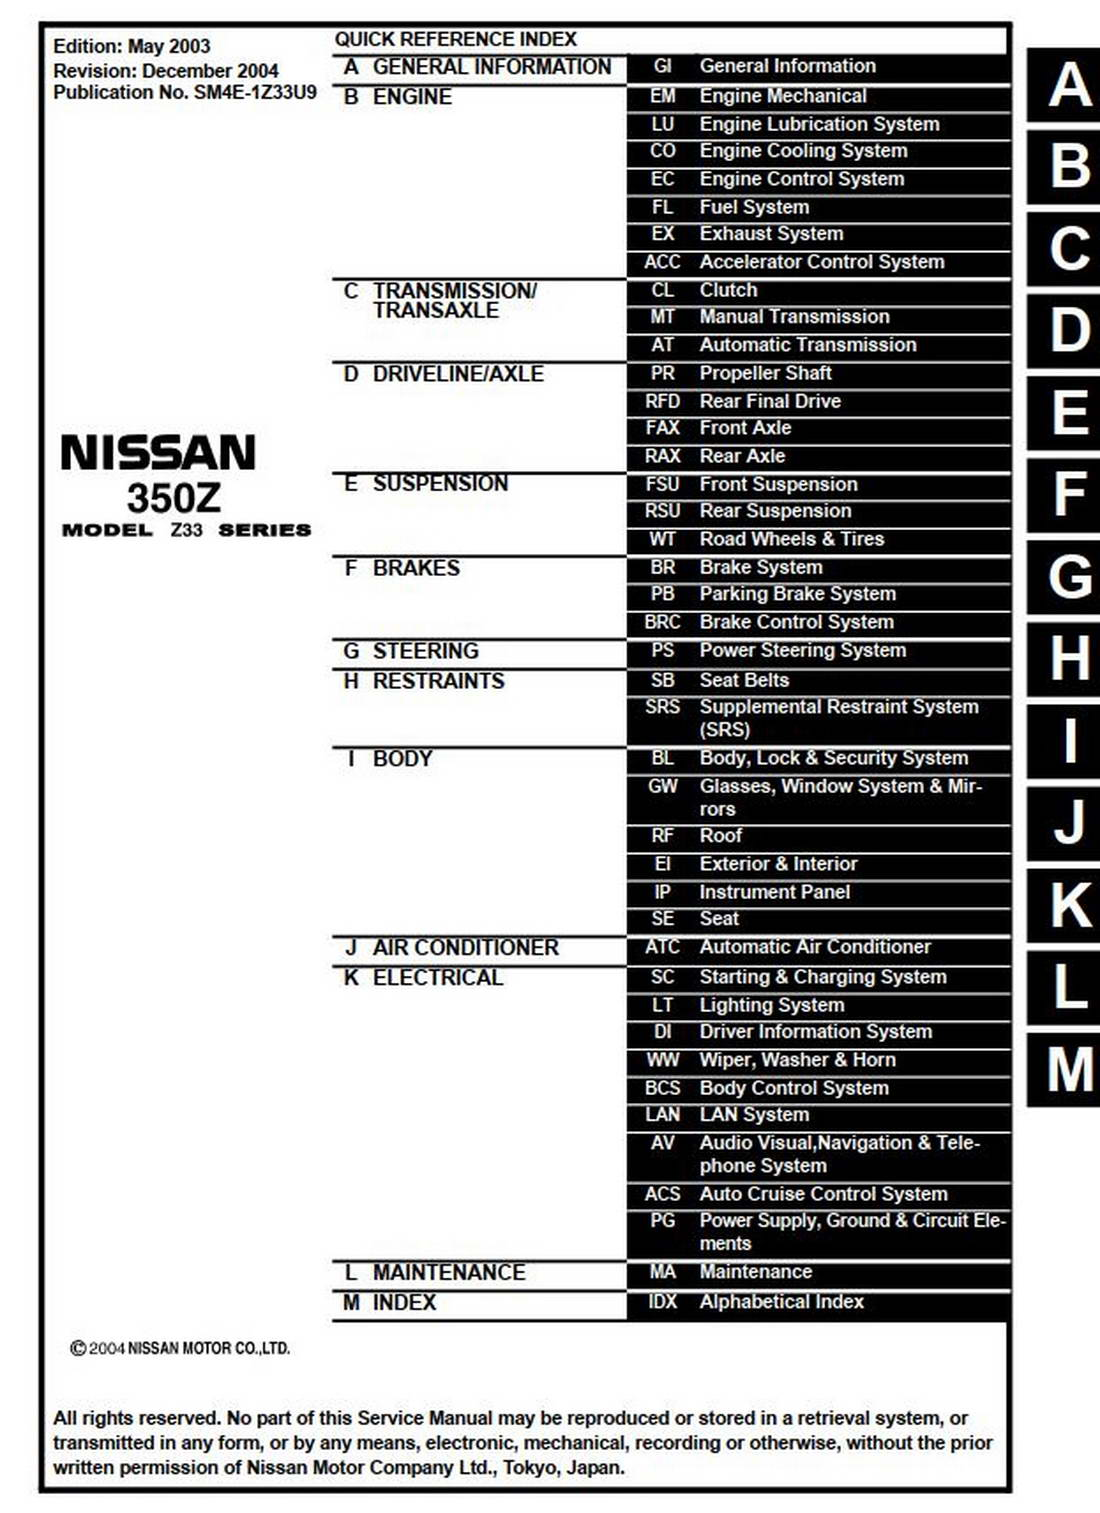 NISSAN 350Z MODEL Z33 SERIES 2004 SERVICE MANUAL (SM4E